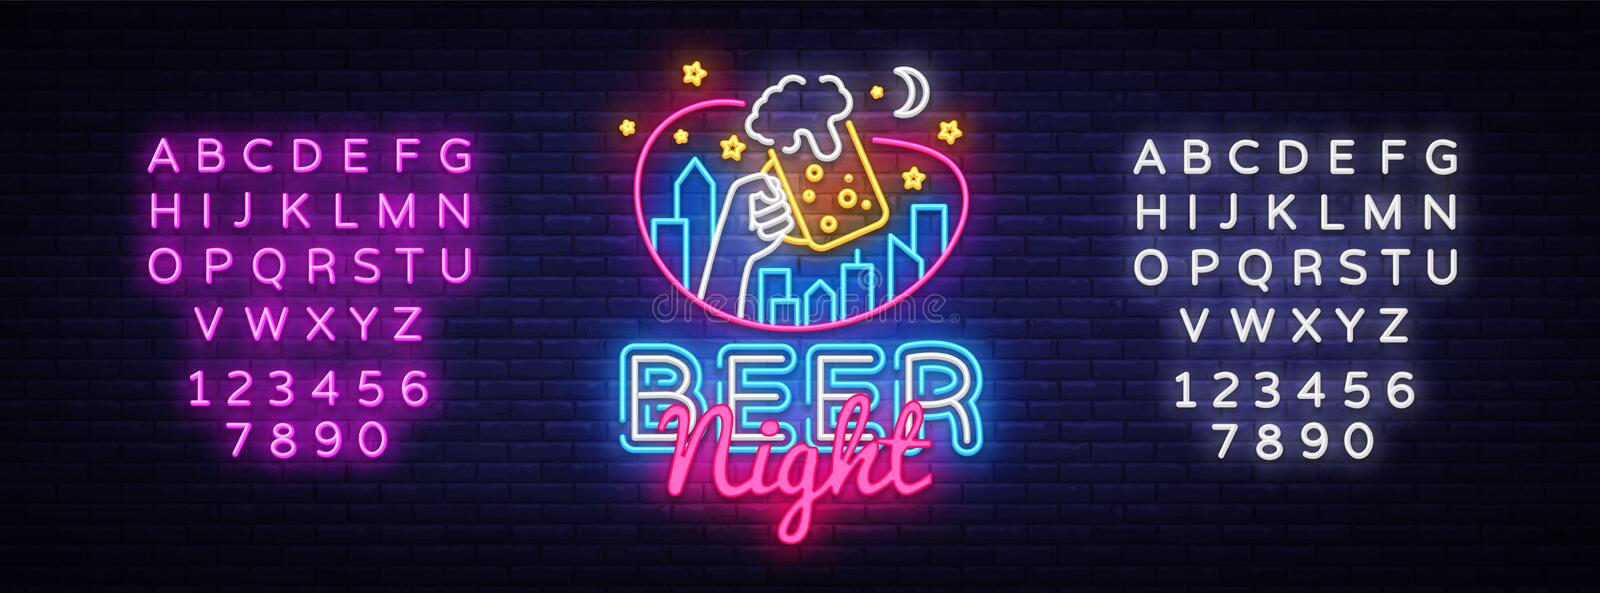 Beer neon sign vector. Beer Night Design template neon sign, light banner, neon signboard, nightly bright advertising. Light inscription. Vector illustration stock illustration